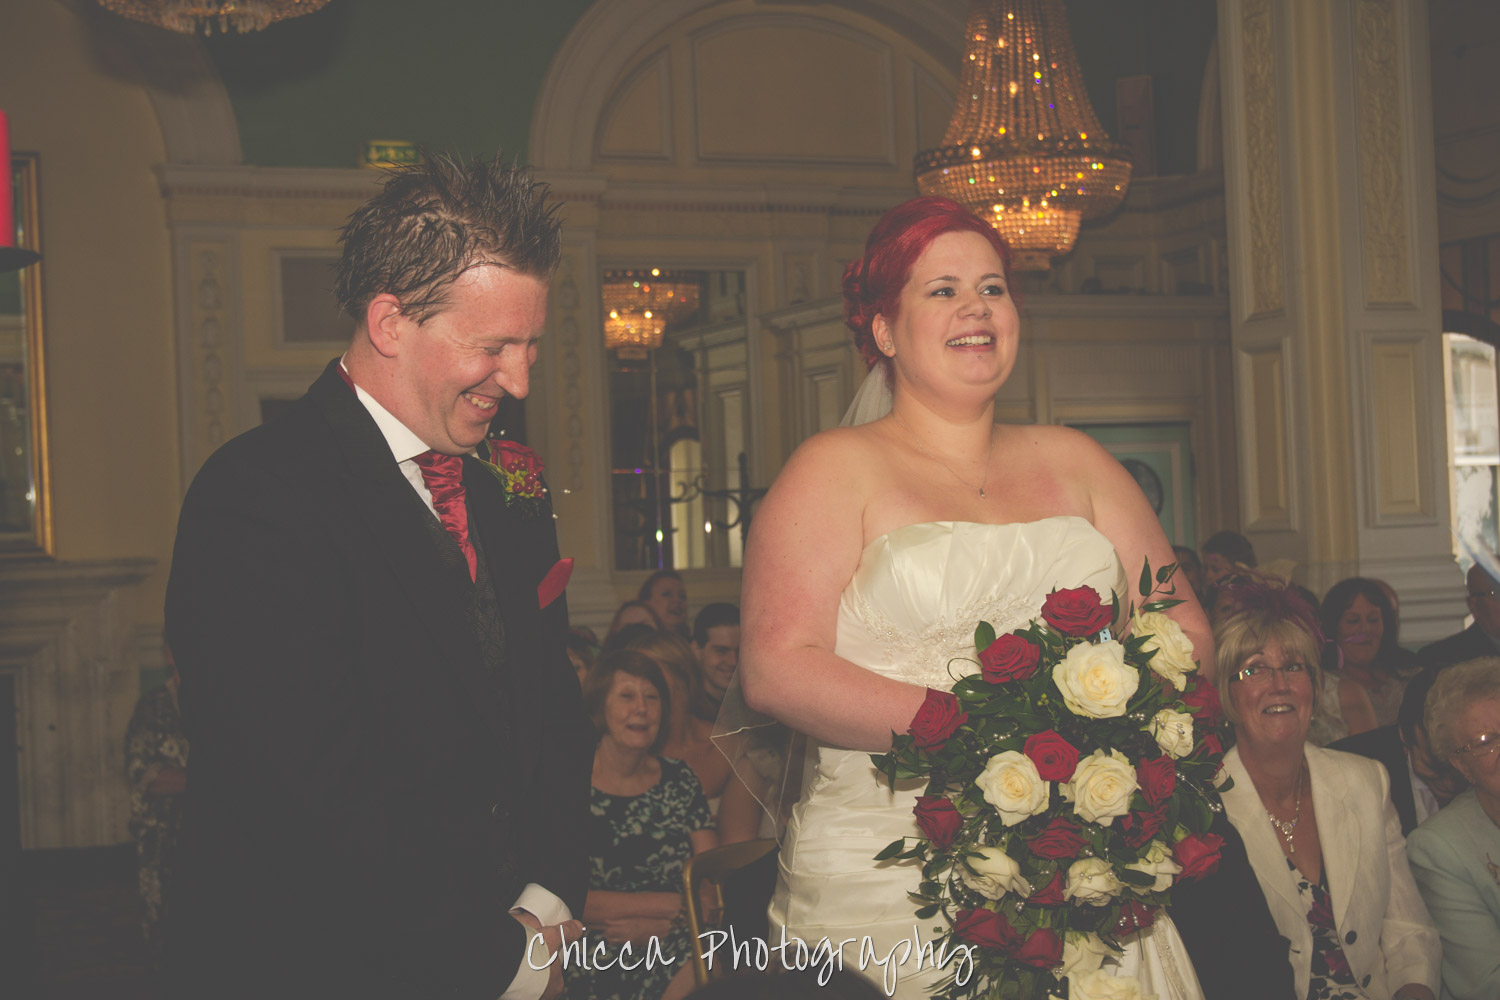 midland-hotel-bradford-wedding-photography-chicca-5.jpg